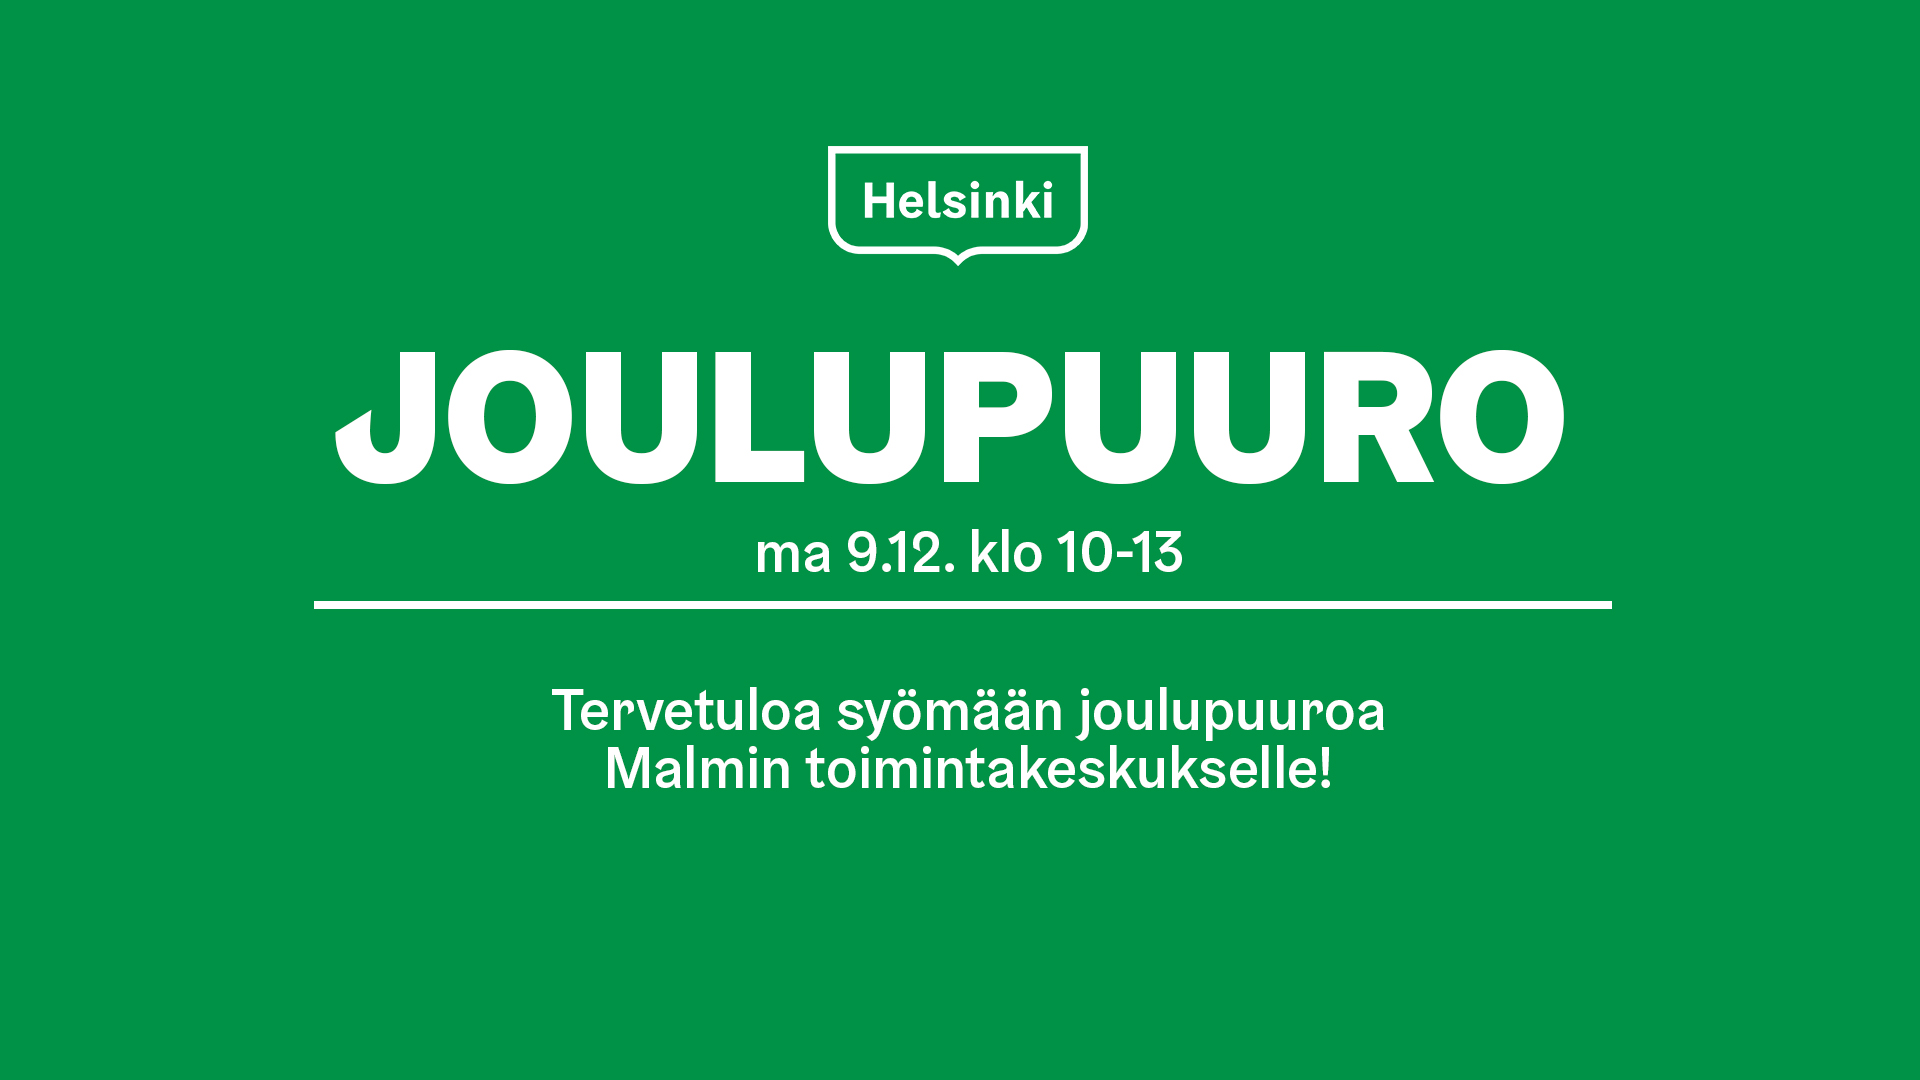 Link to event Joulupuuro